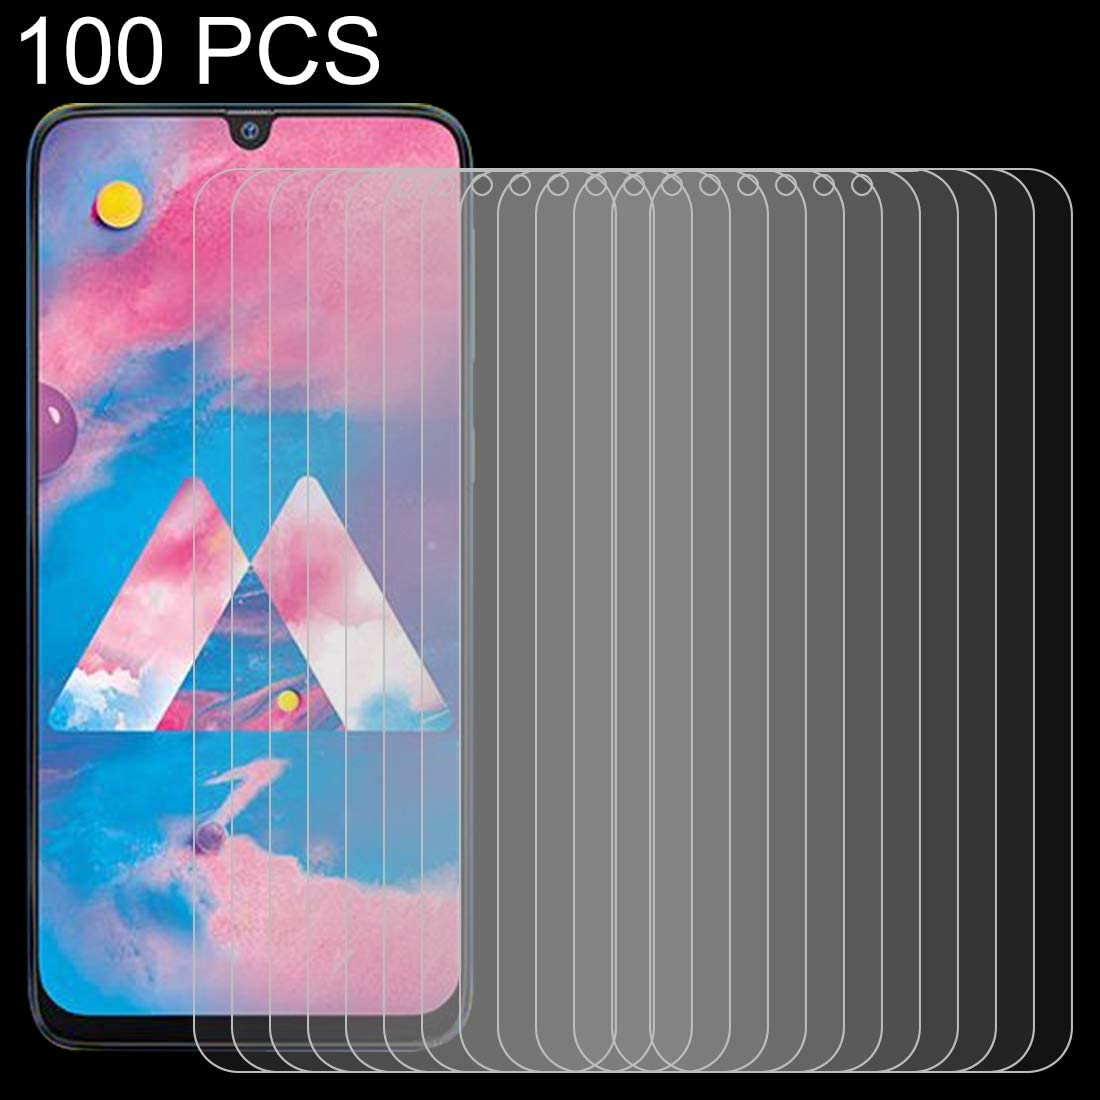 GzPuluz Glass Protector Film 100 PCS 0.26mm 9H 2.5D Tempered Glass Film for Galaxy M30